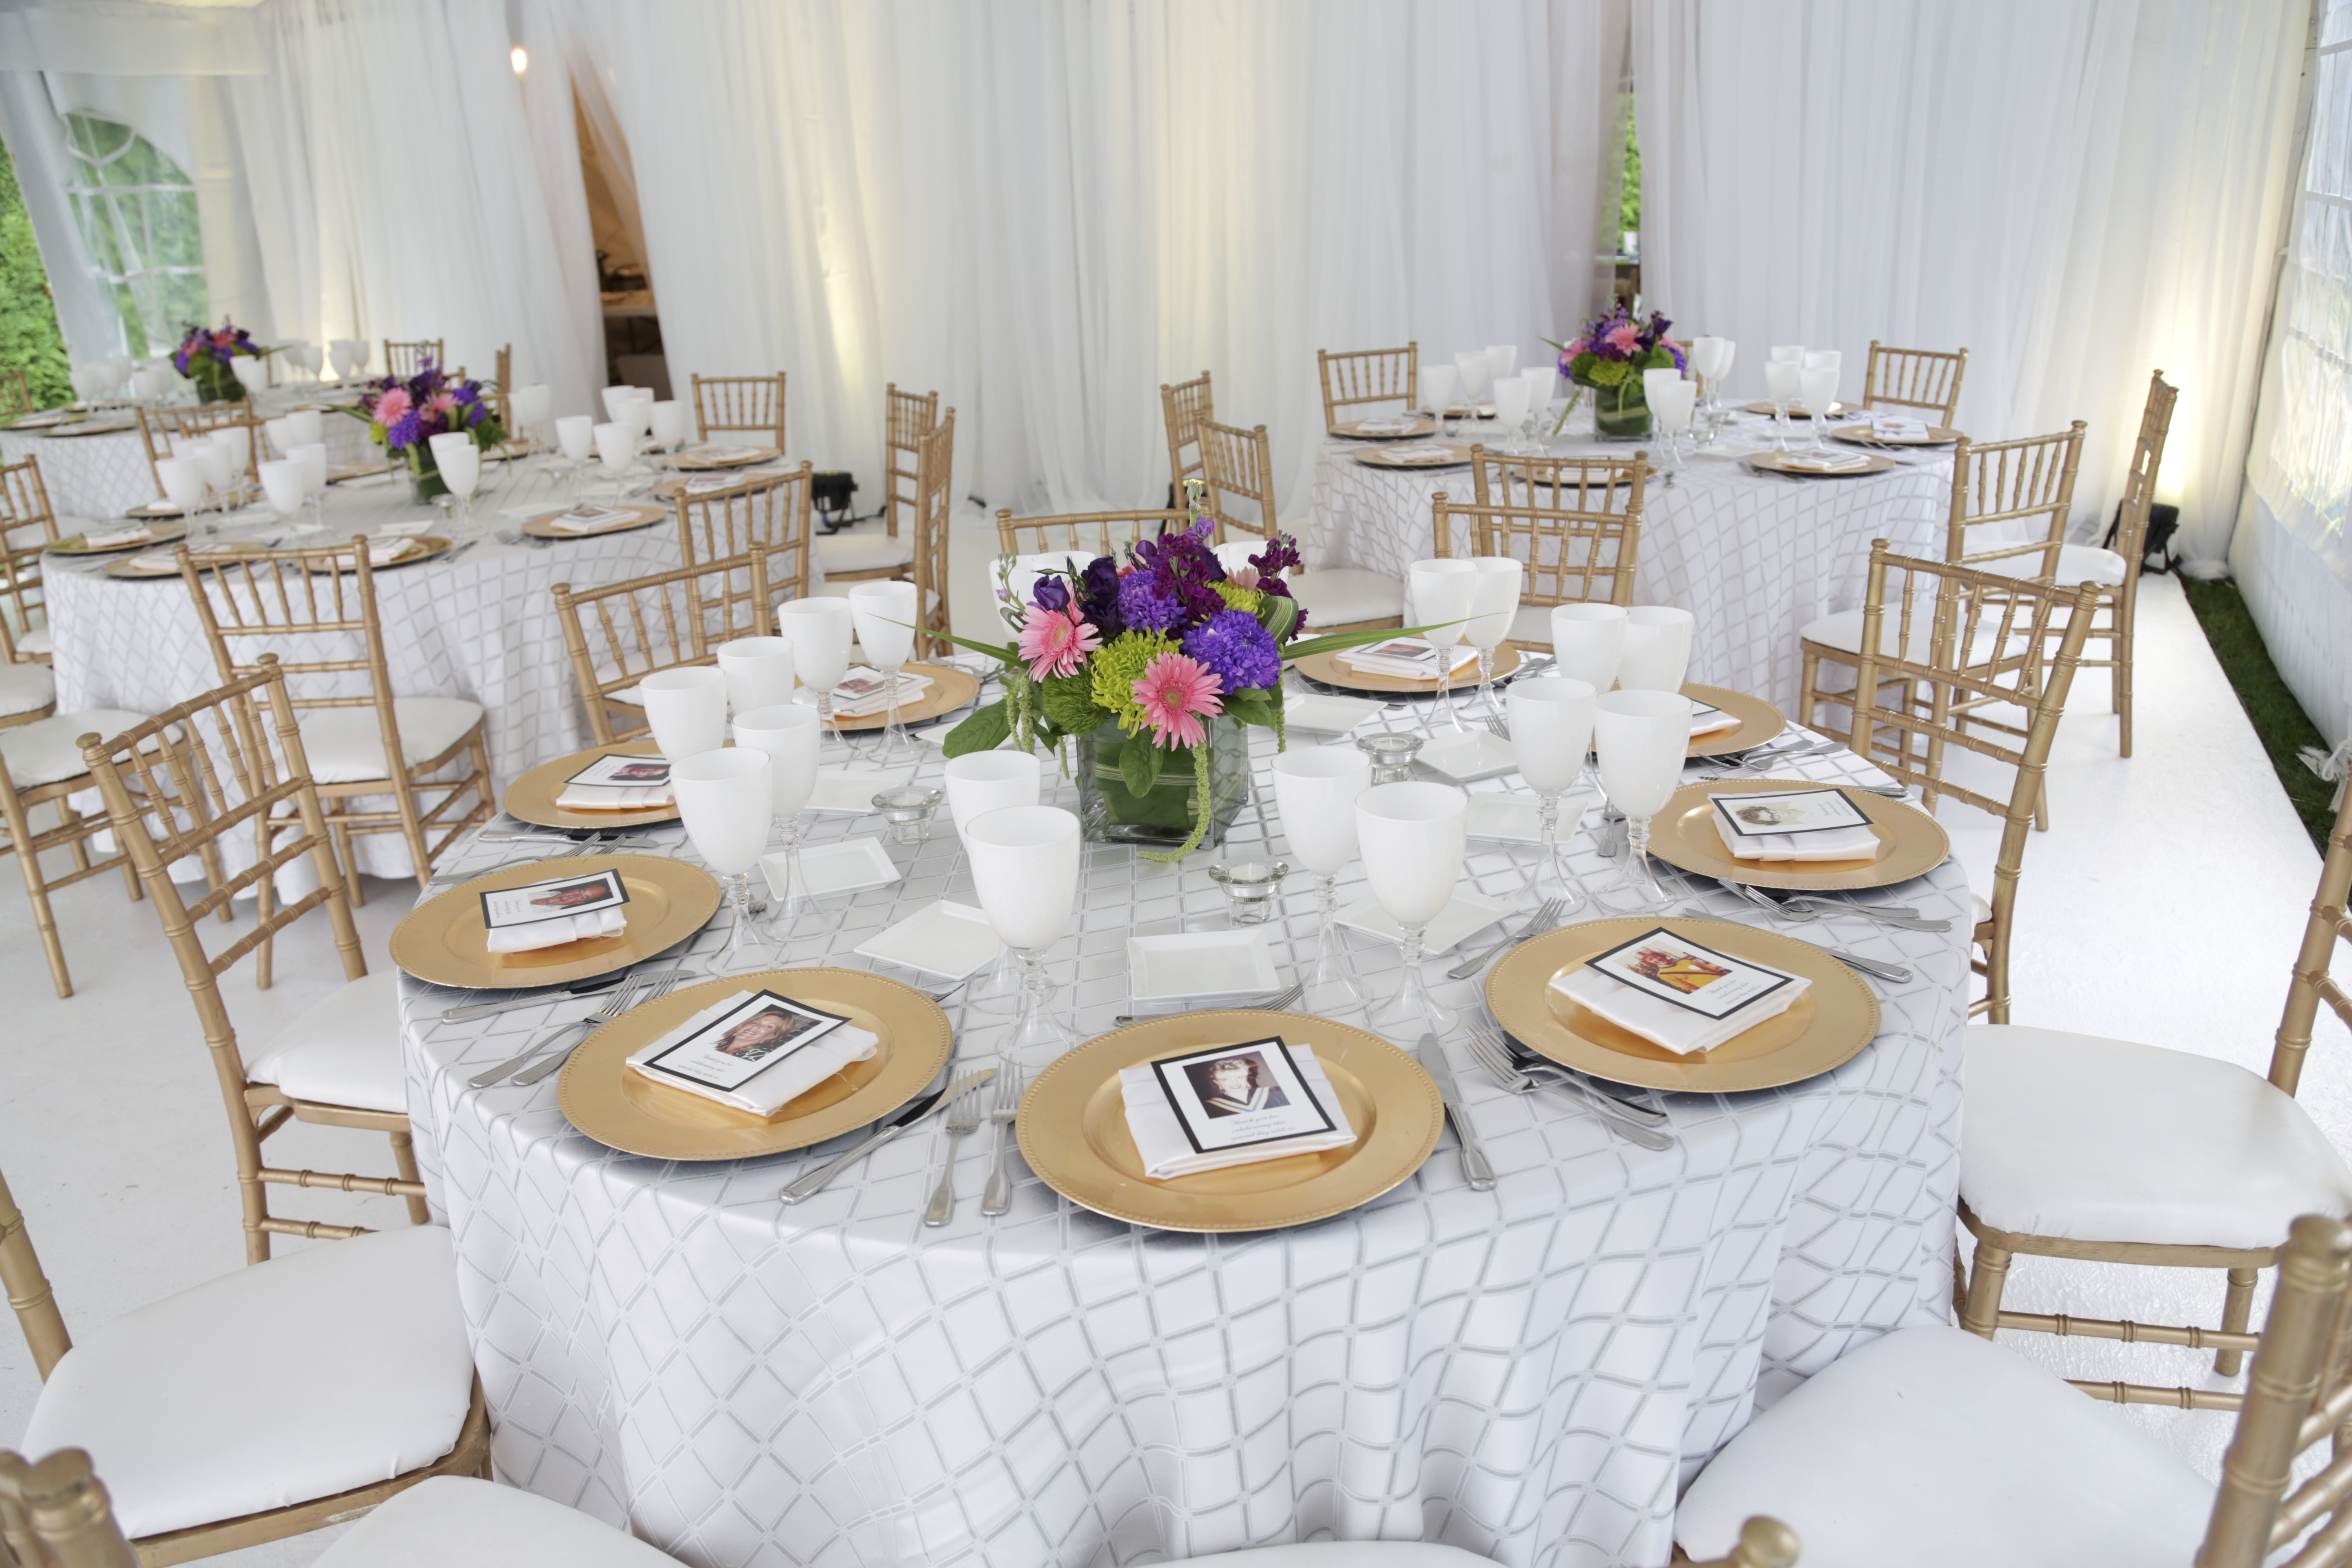 How to Choose the Right Wedding Venue for You